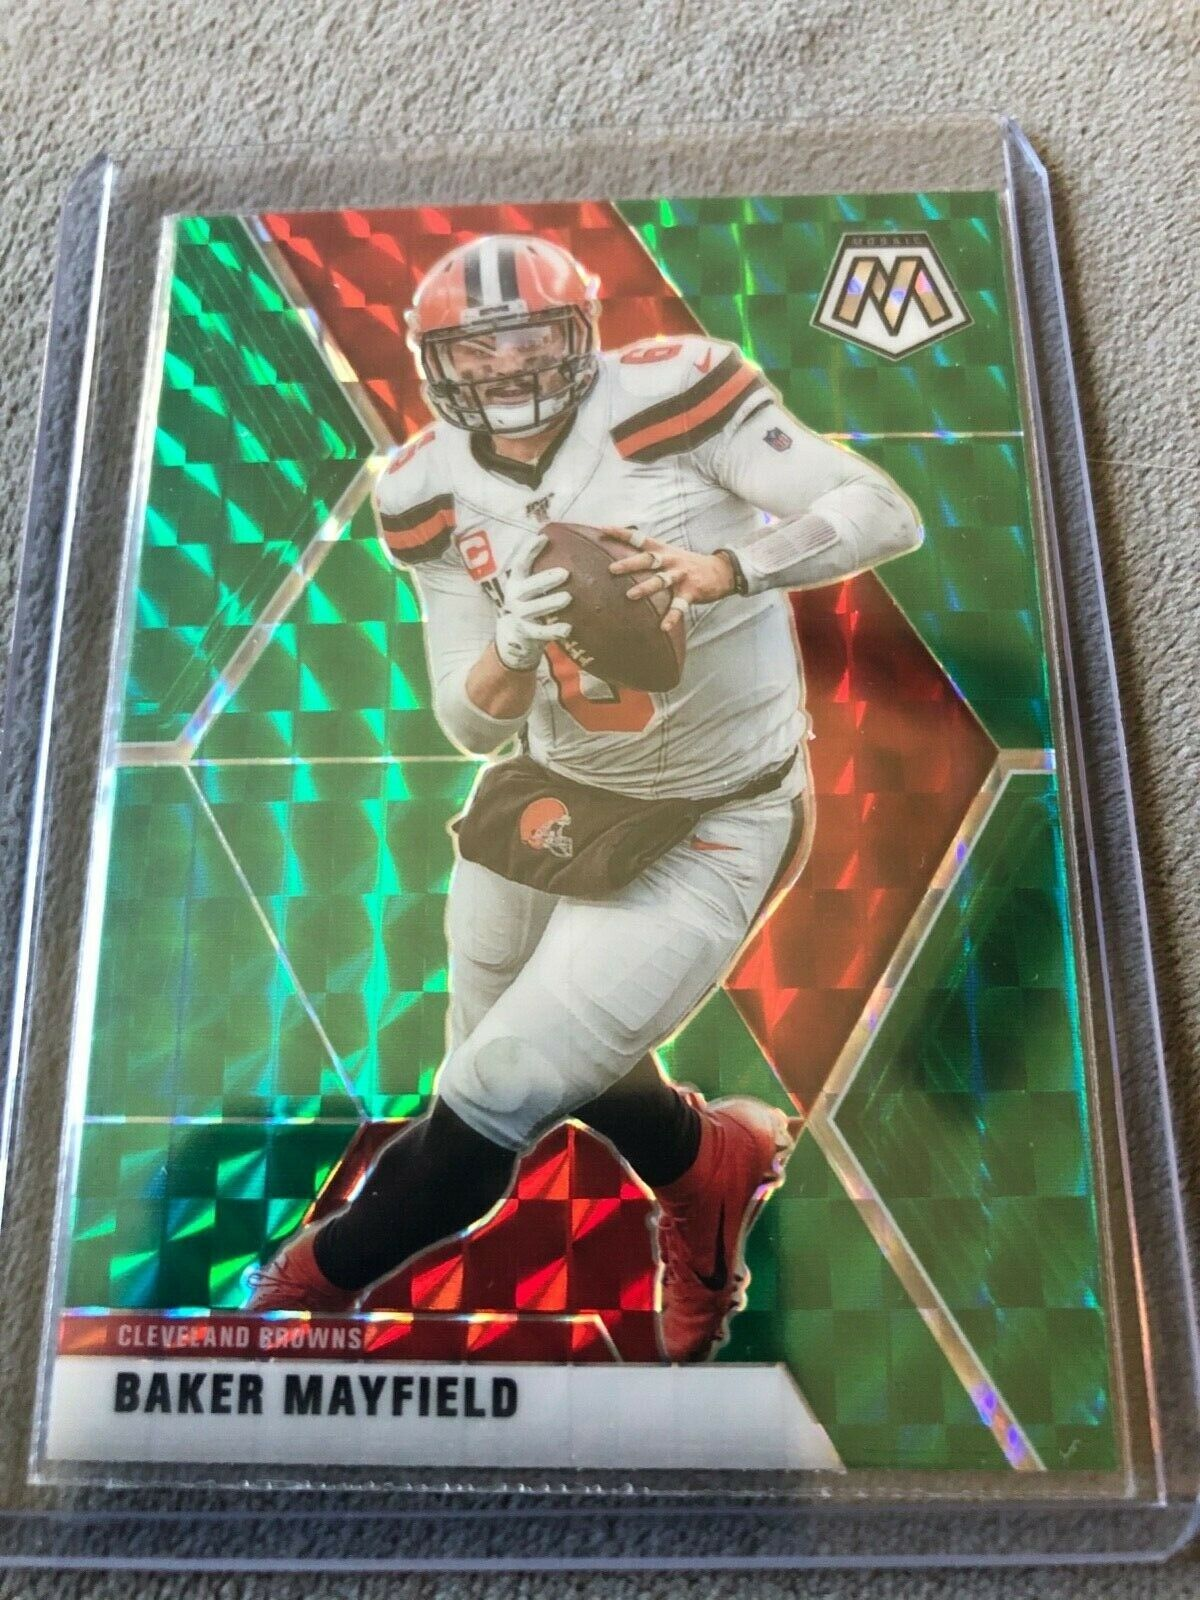 2020 Mosaic Football Cards Baker Mayfield In 2020 Football Cards Baseball Cards Cards